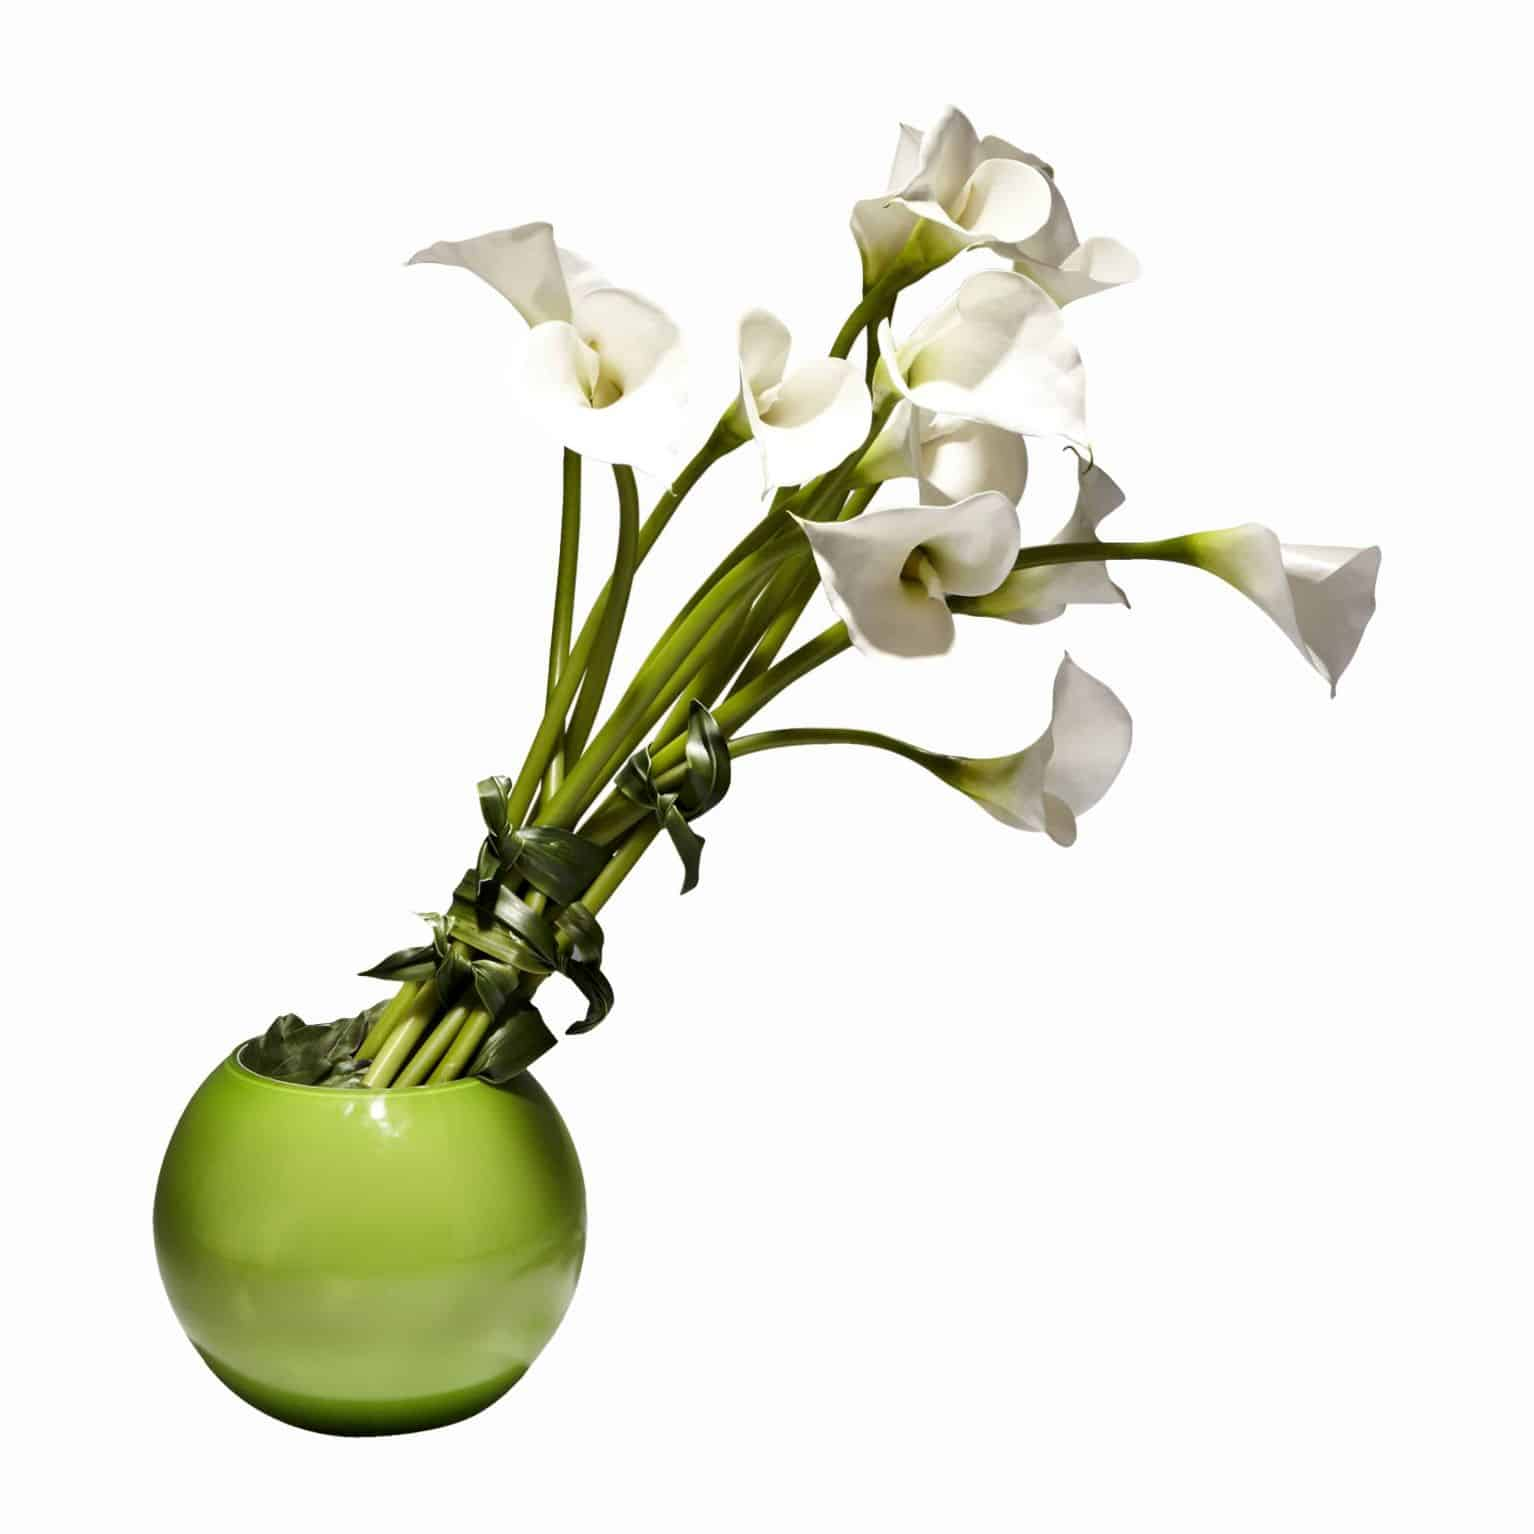 White calla lily artificial flower arrangement green bowl vase s buy our modern arrangement of fine silk lily flowers in a vibrant green bowl vase izmirmasajfo